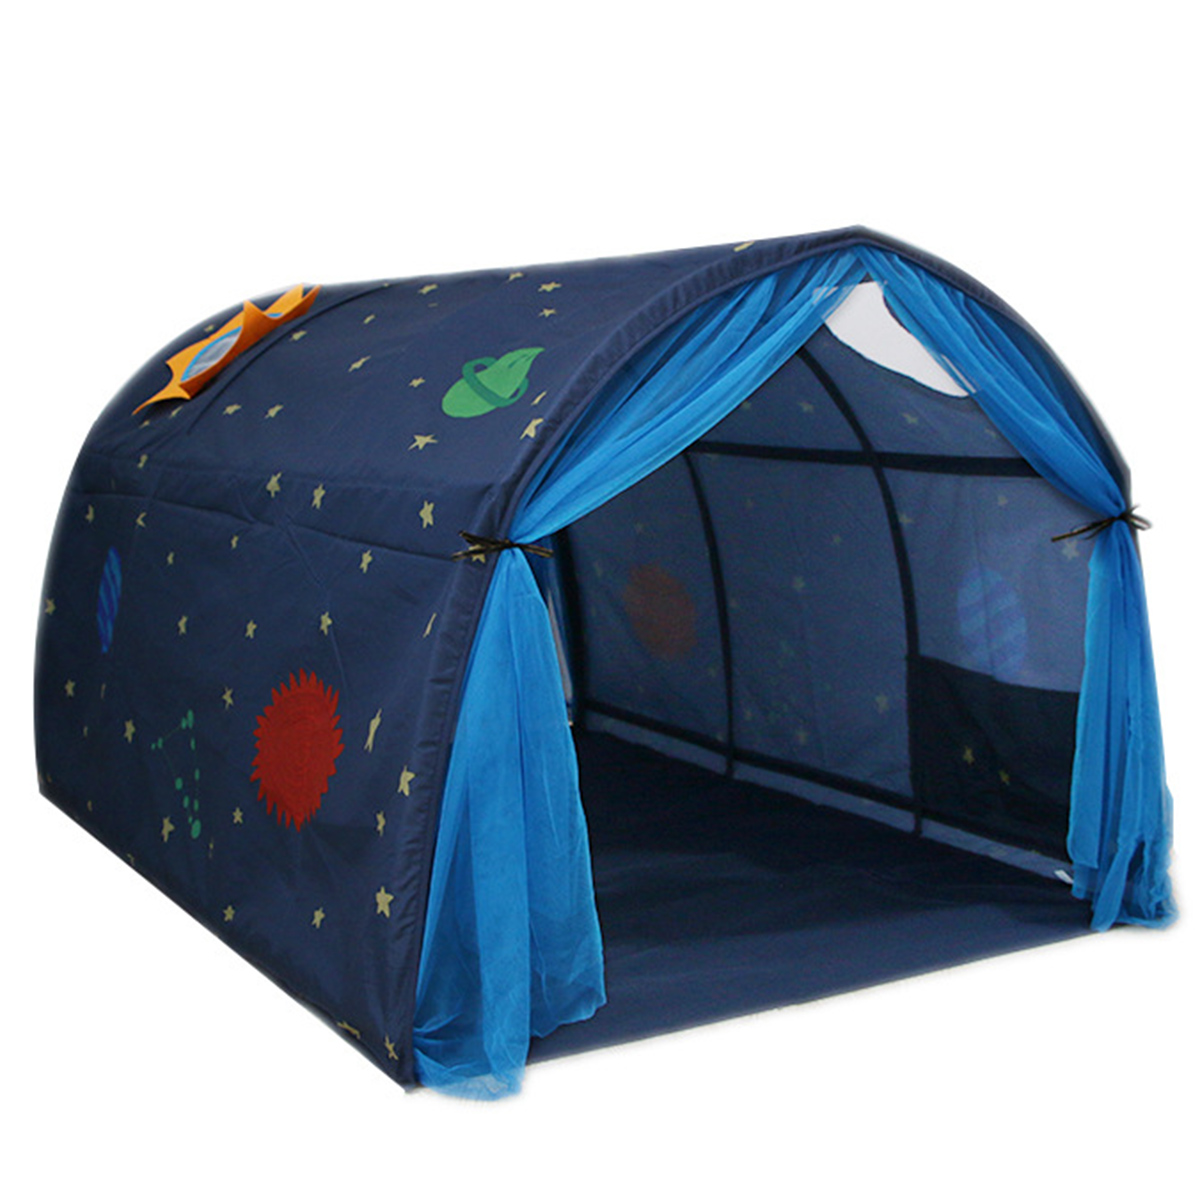 Image of: Hot Bed Tent Dream For Kids Boy Toddler Magical Space Adventure Mattress Indoor Ebay